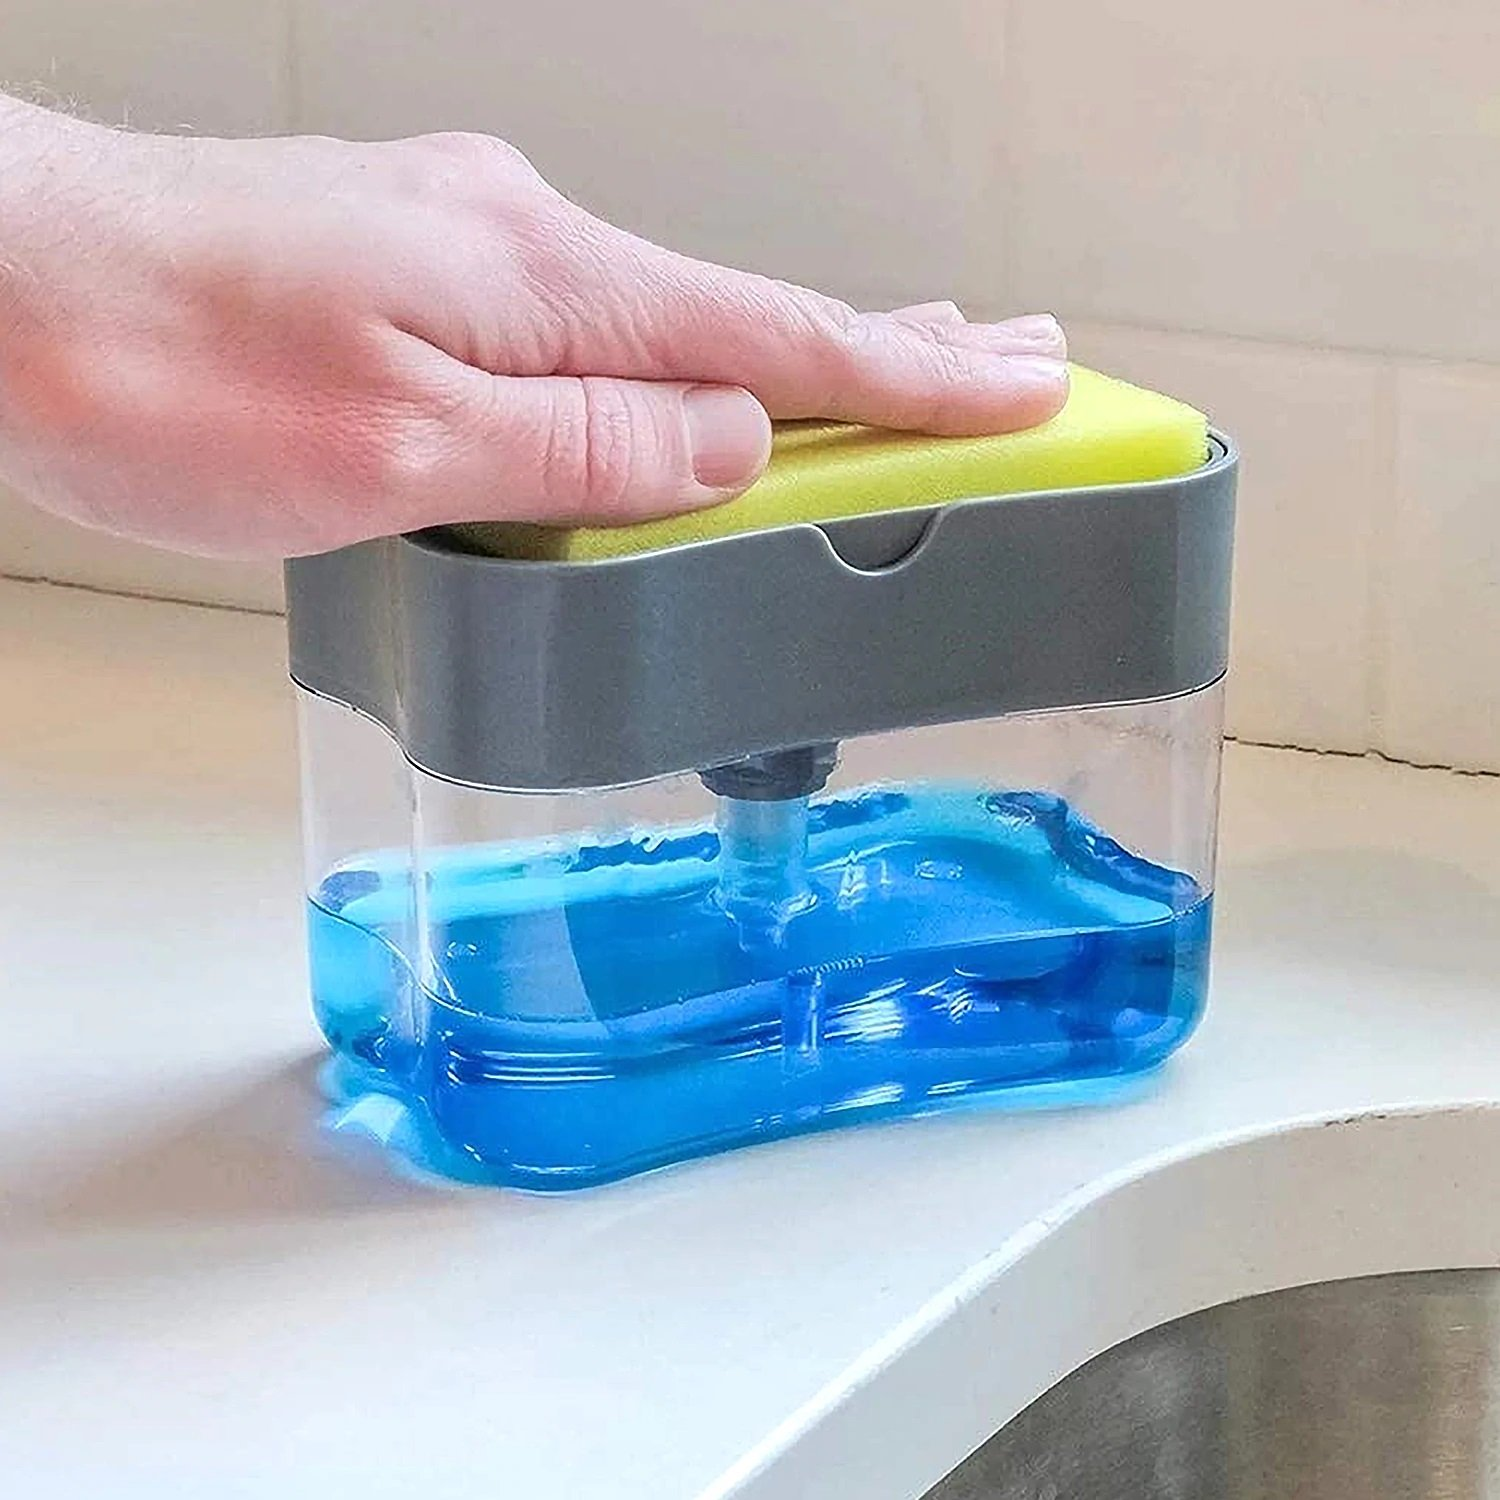 ✨NEW YEAR SALE 50%OFF-TODAY✨Soap Pump Dispenser and Sponge Caddy Holder 2 in 1 For Kitchen